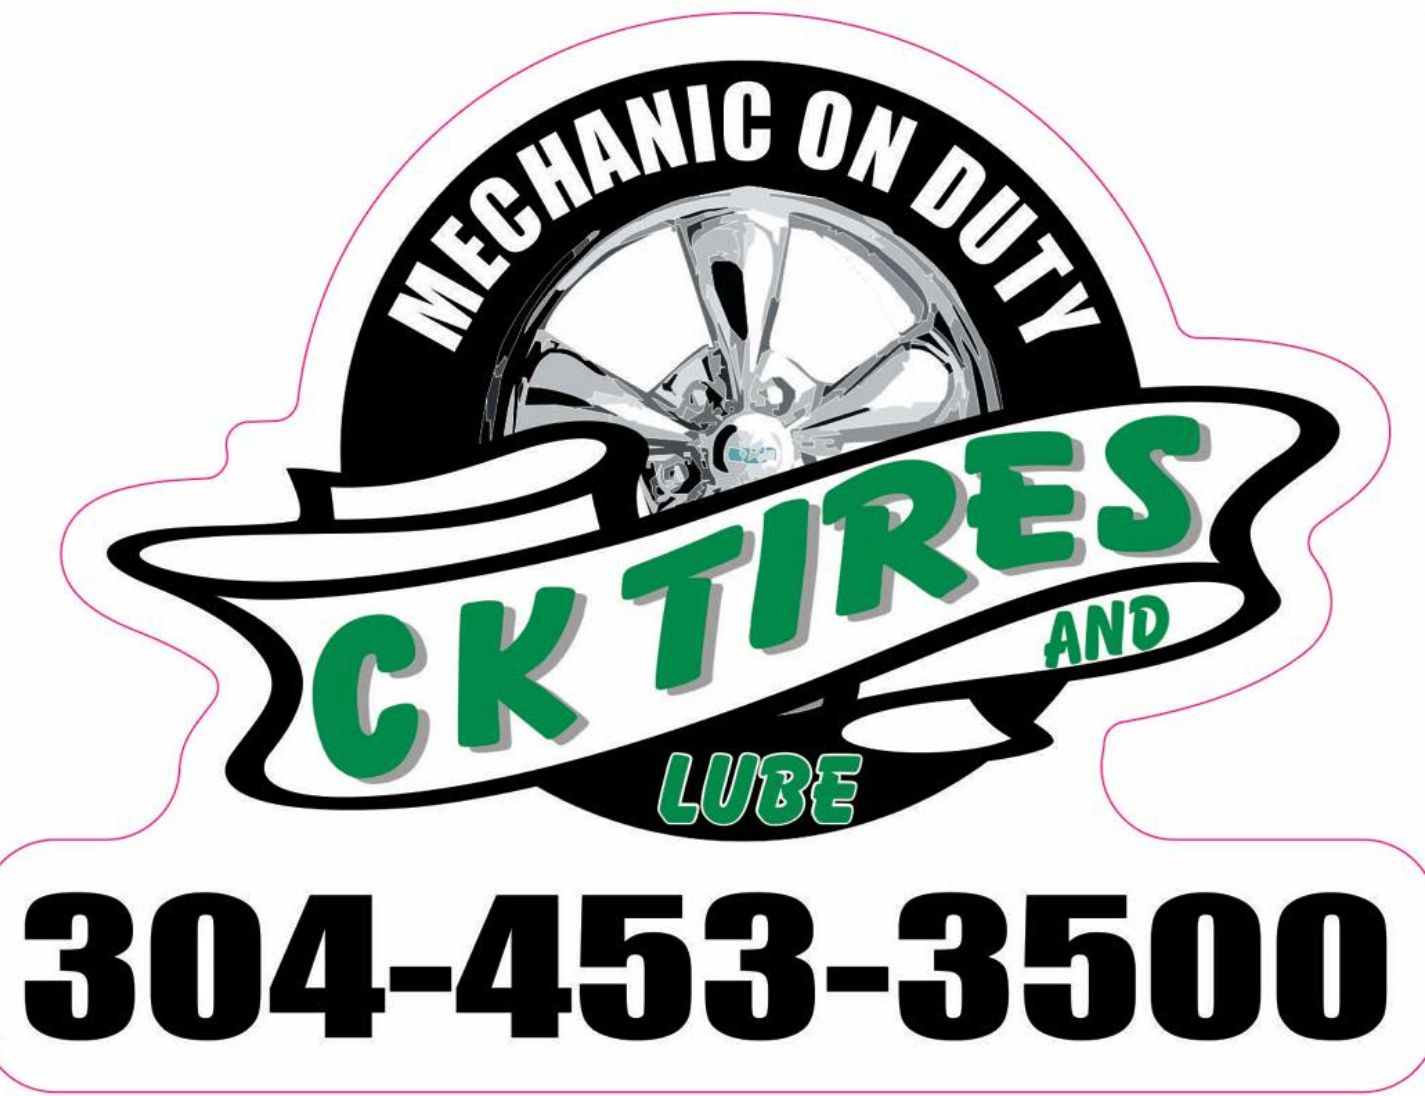 C K Tires & Lube | Best Place For Tires In The TriState  304-453-3500 Monday Thru Friday 8 To 6 Saturday By Appointment